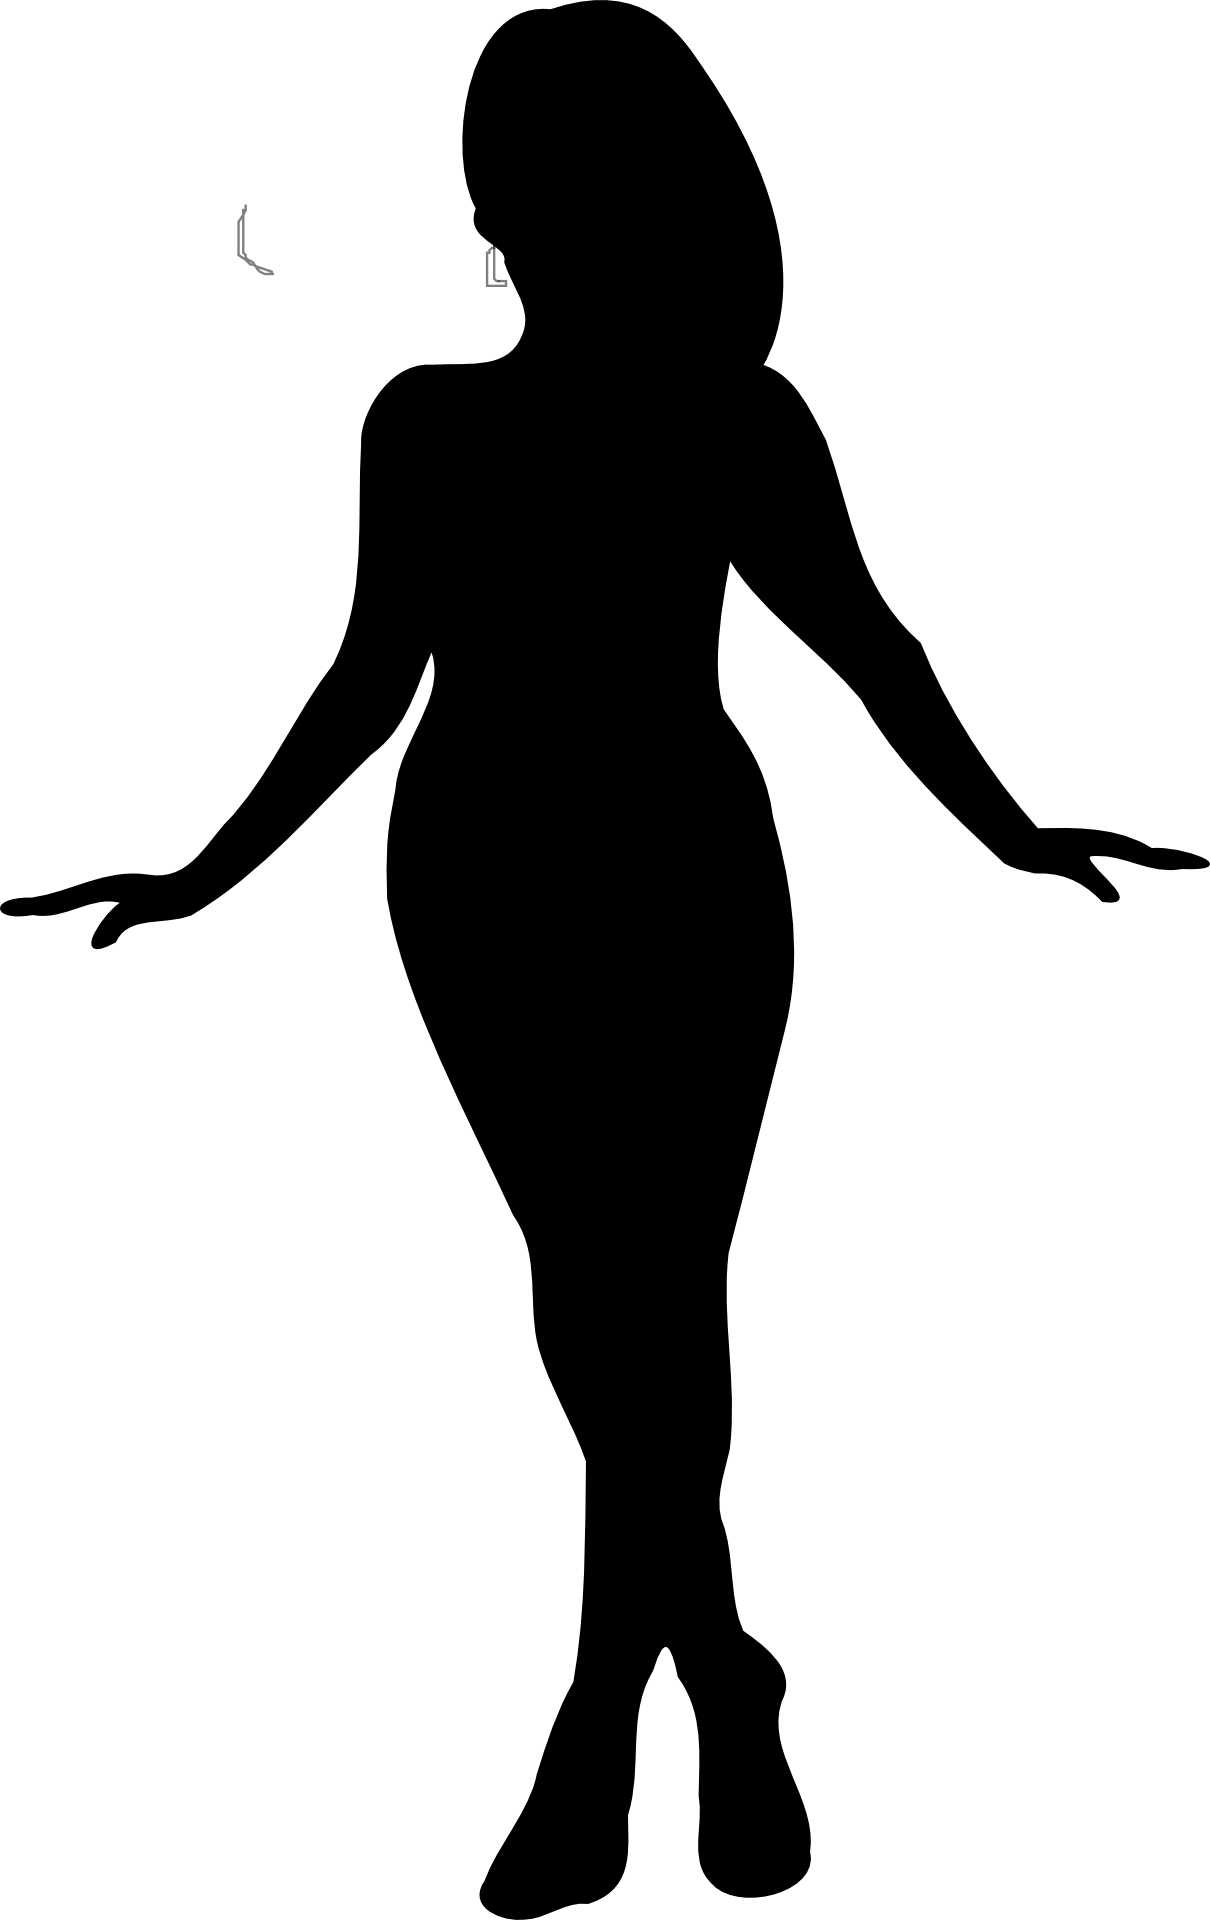 Woman Silhouette Face at GetDrawings.com.